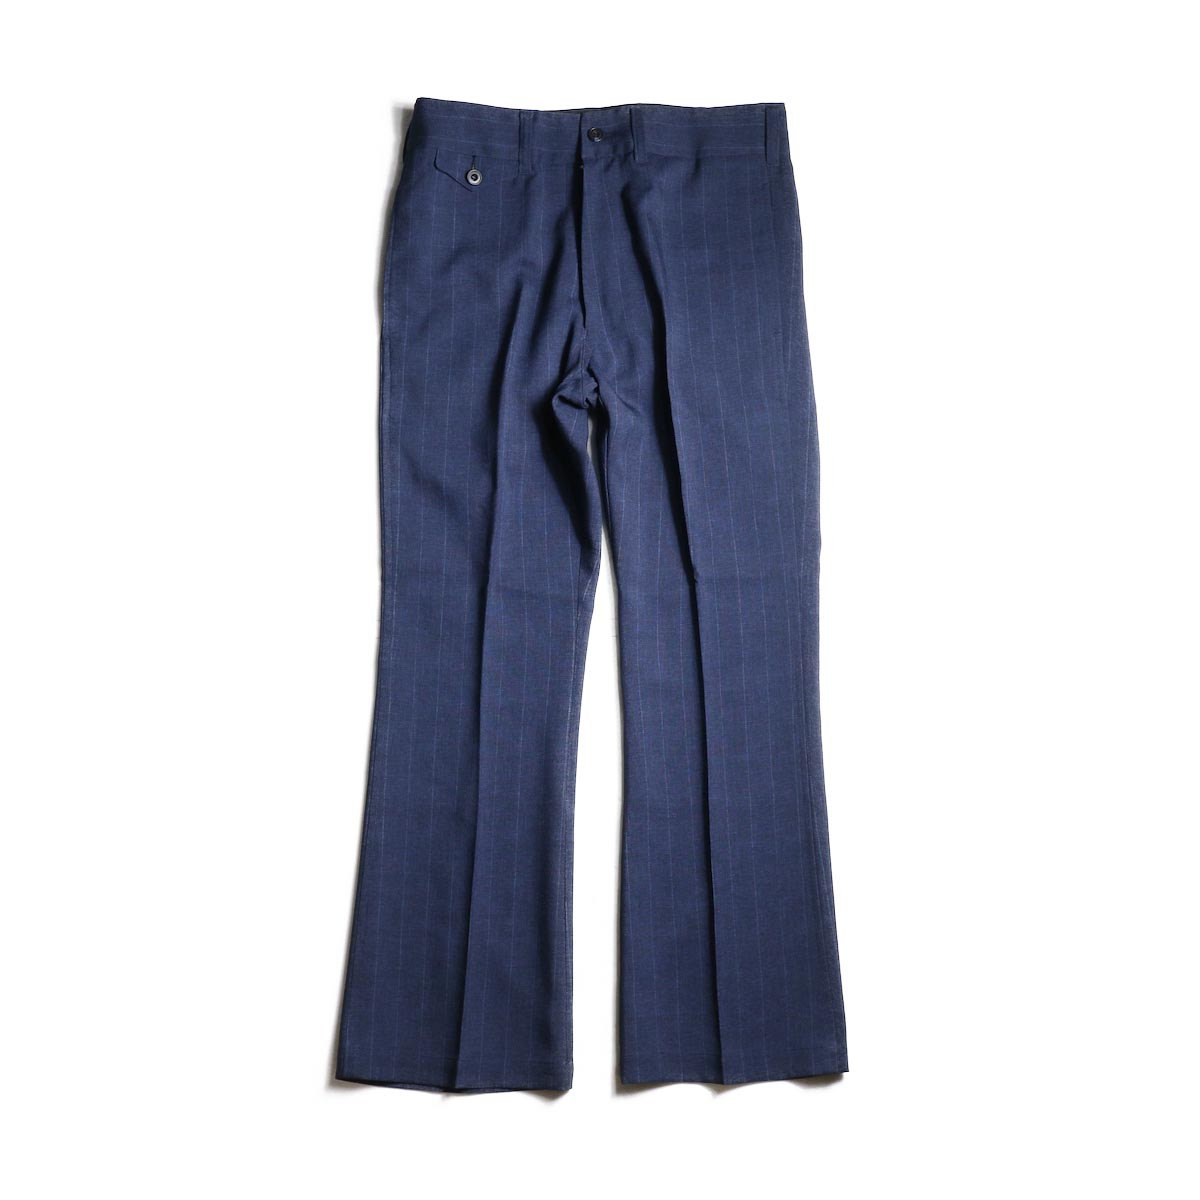 Needles / Flap Pocket Boot-Cut Trouser -Tropical Poly Cloth (Nvy/Stripe)